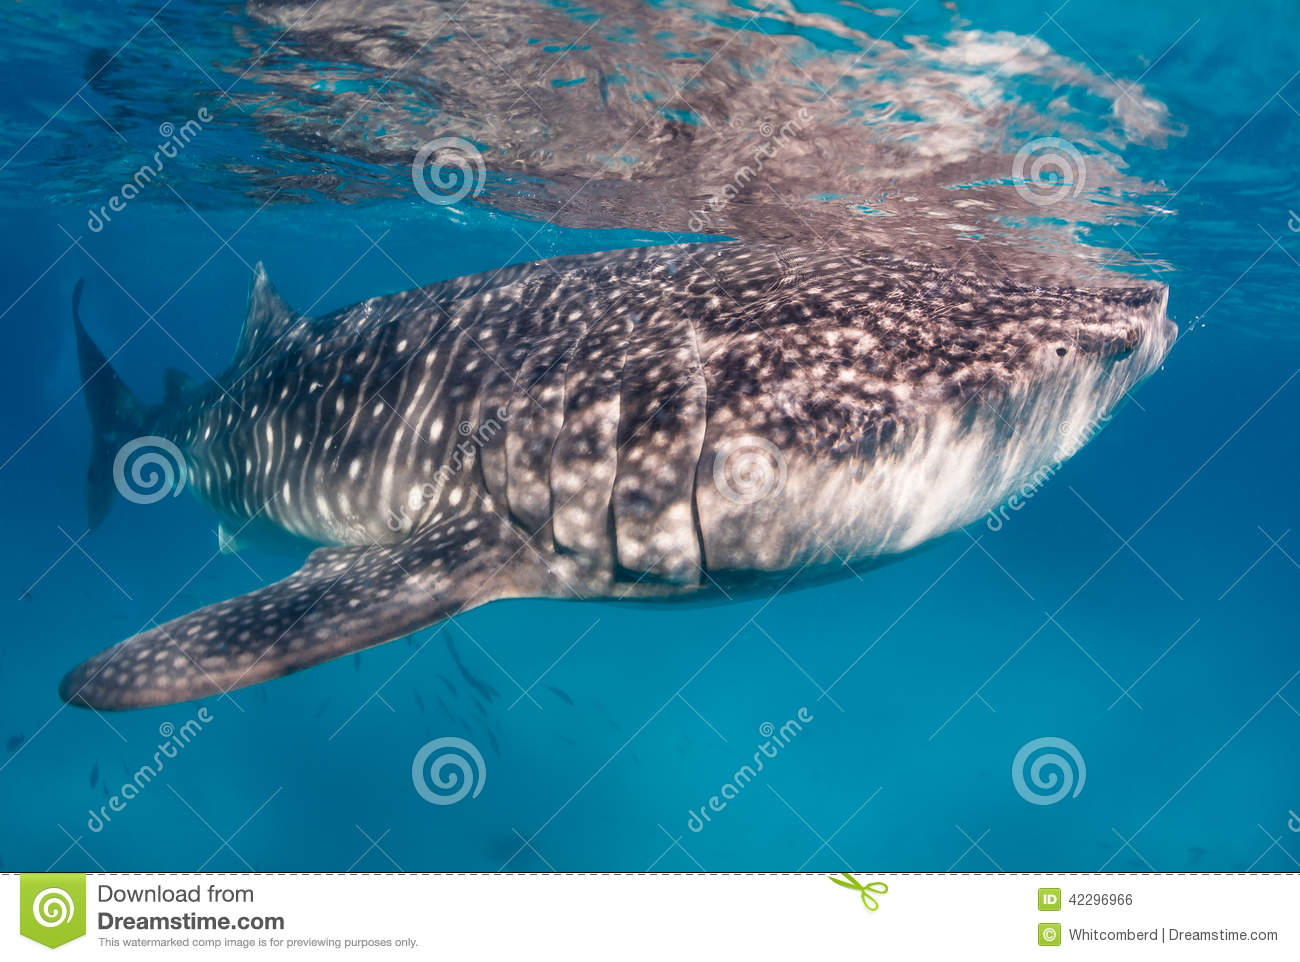 Whale shark in clear water